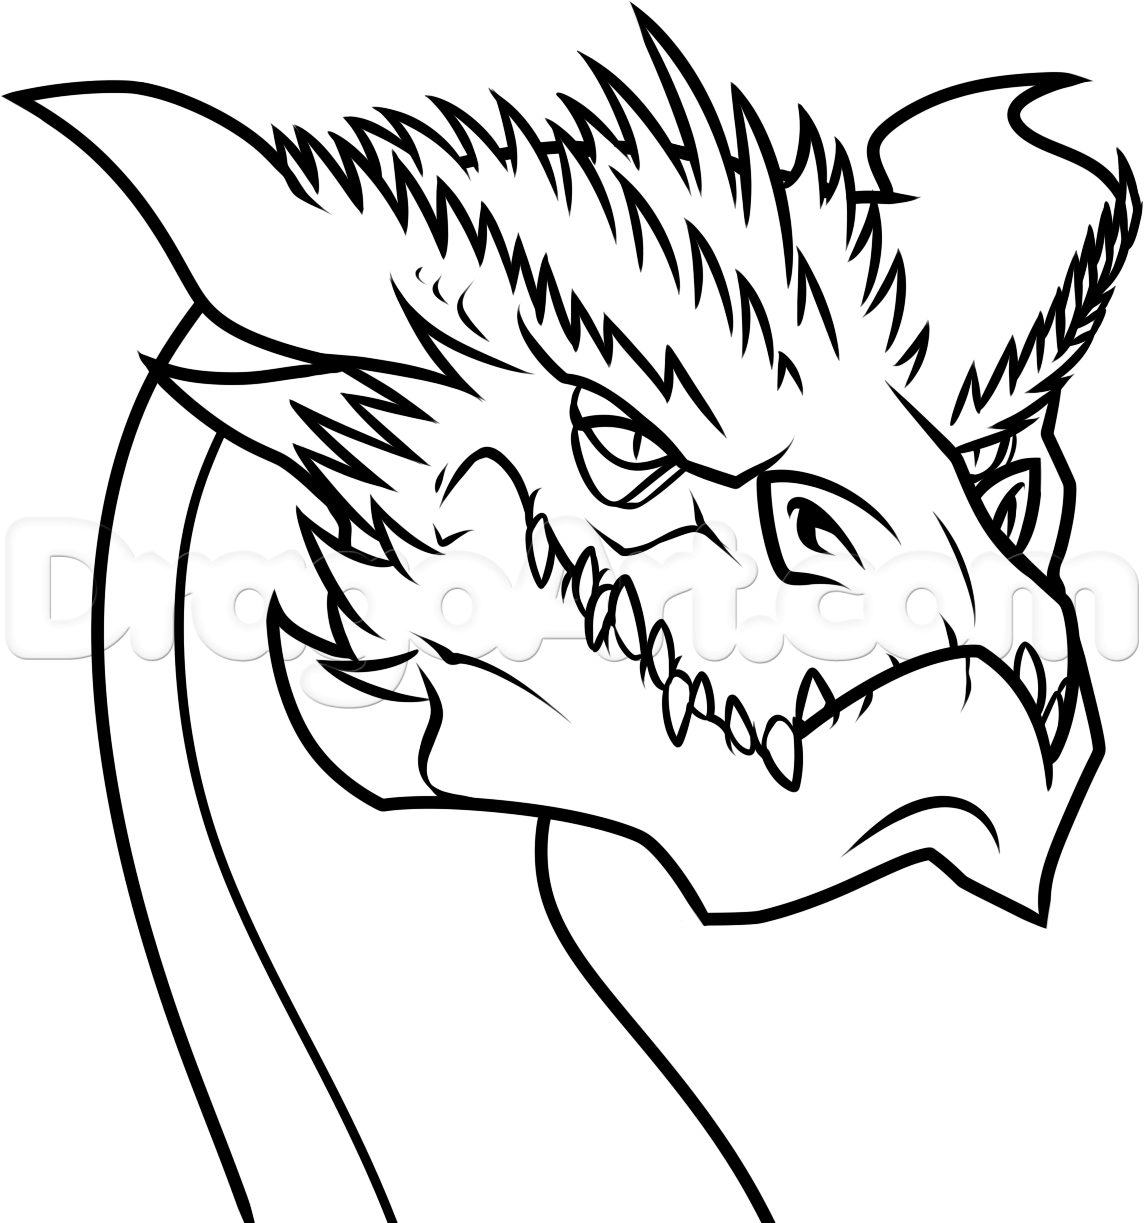 1144x1223 Incredible Smaug Hobbit Dragon Coloring Pages With Hobbit Coloring